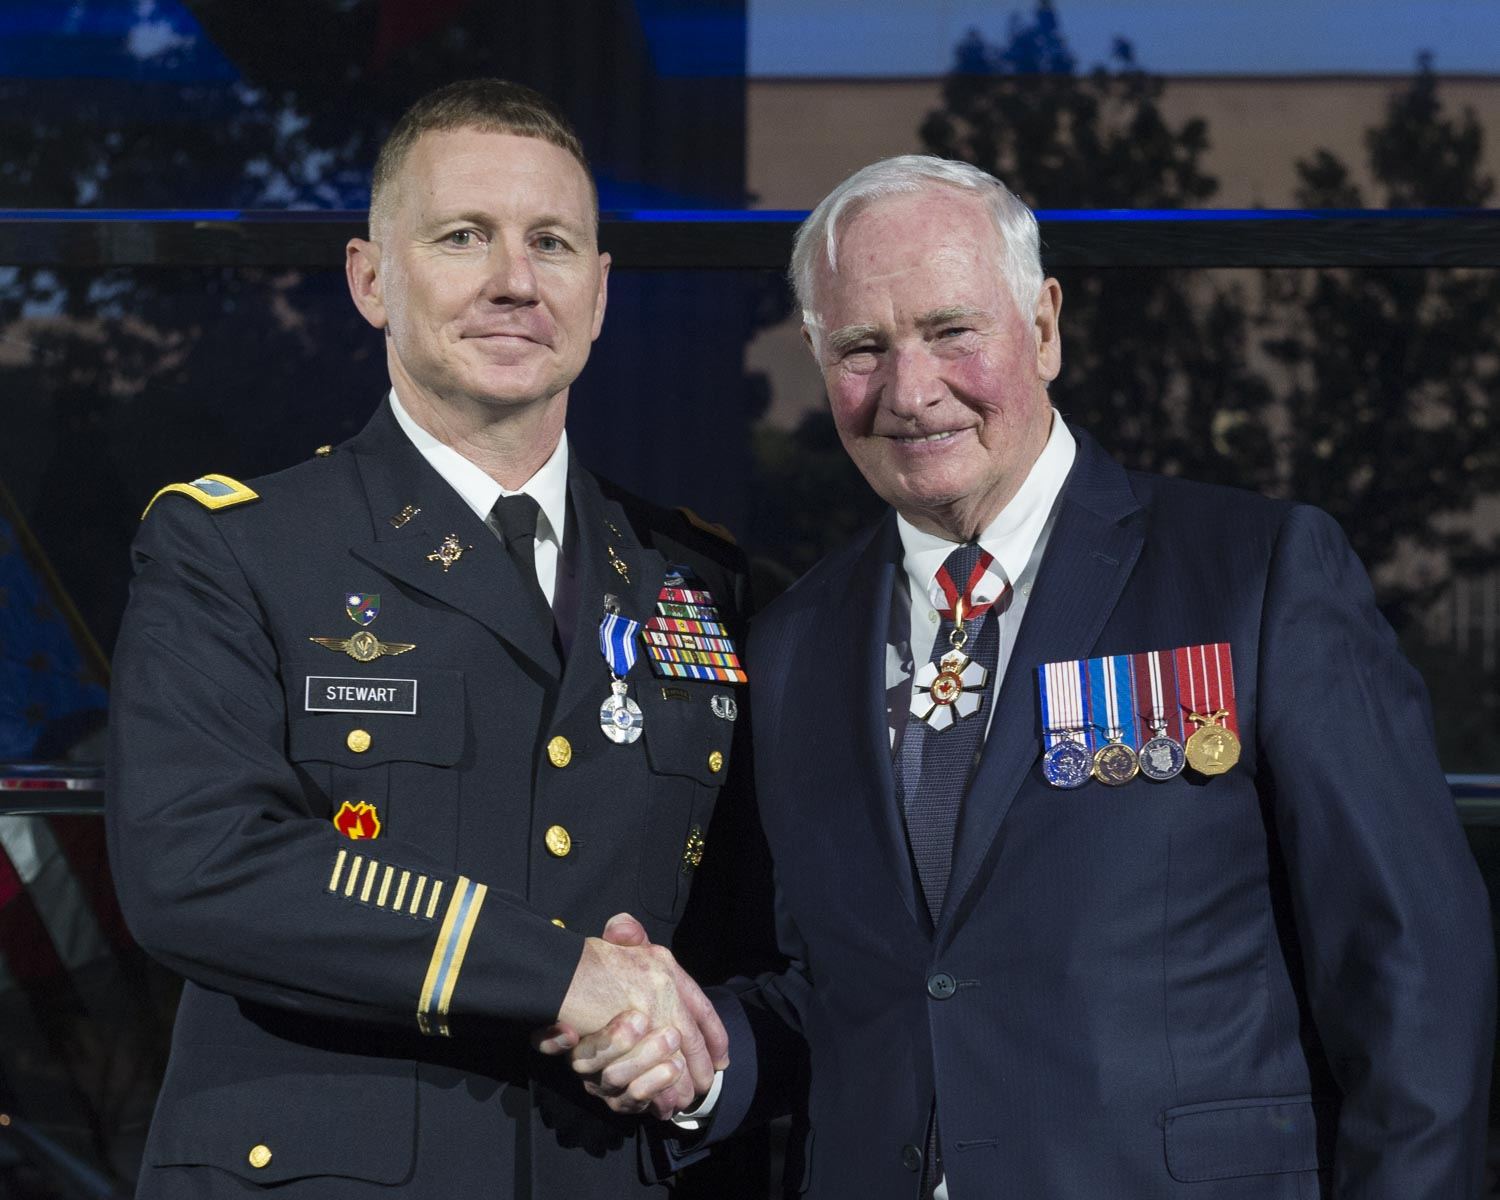 From 2013 to 2015, Colonel Stewart consistently demonstrated exemplary leadership and outstanding professionalism as deputy chief of staff operations at the Canadian Joint Operations Command in Ottawa, Ontario. Moreover, his work ethic, planning and organizational skills enabled him to make a direct and meaningful contribution to Canadian Armed Forces' domestic and expeditionary operational success. Colonel Stewart's dedication and commitment has brought great honour and recognition to Canada.